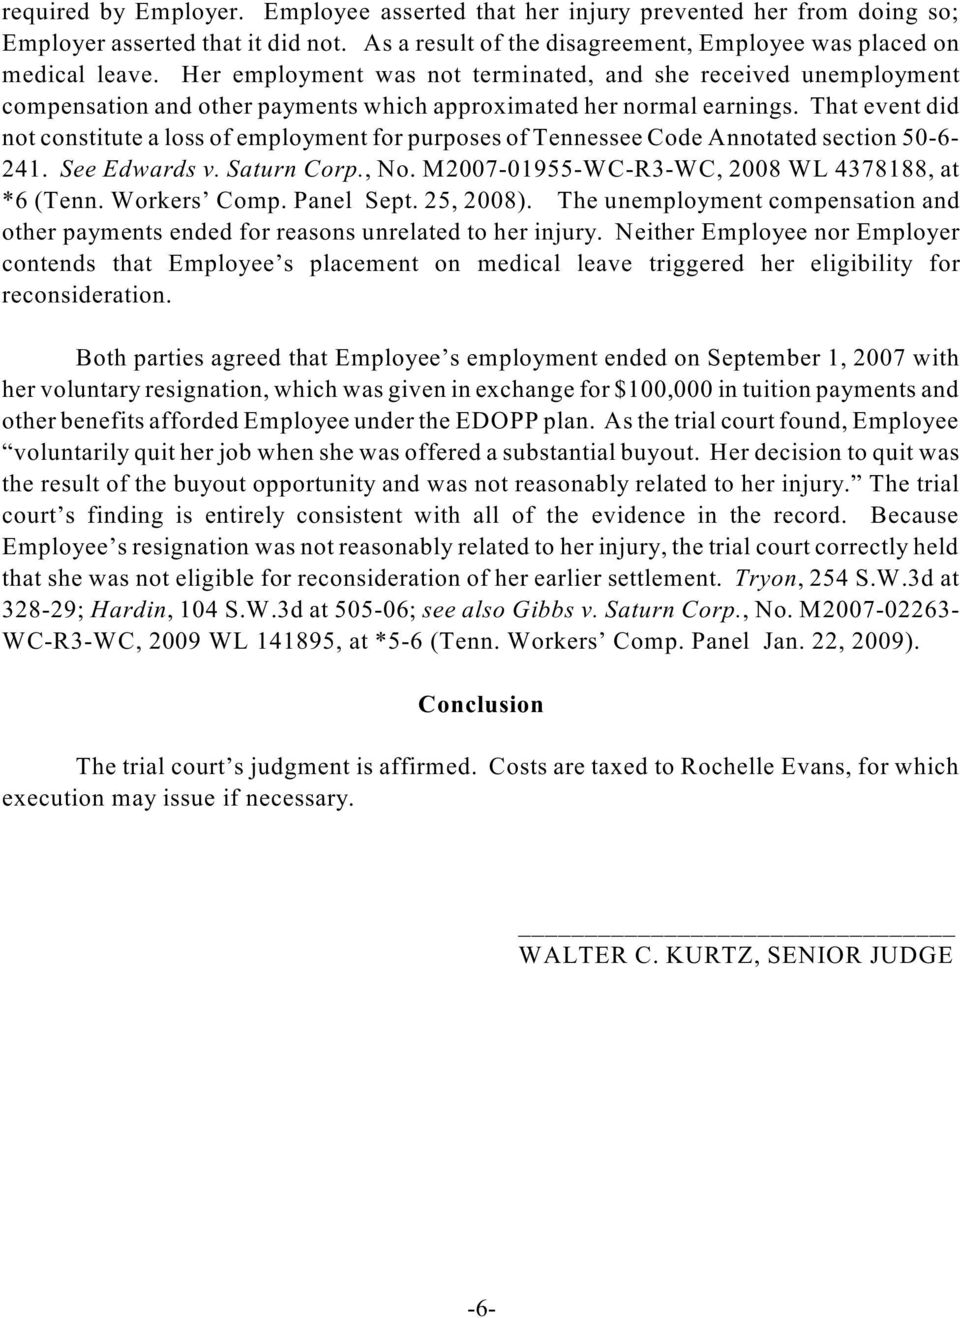 That event did not constitute a loss of employment for purposes of Tennessee Code Annotated section 50-6- 241. See Edwards v. Saturn Corp., No. M2007-01955-WC-R3-WC, 2008 WL 4378188, at *6 (Tenn.